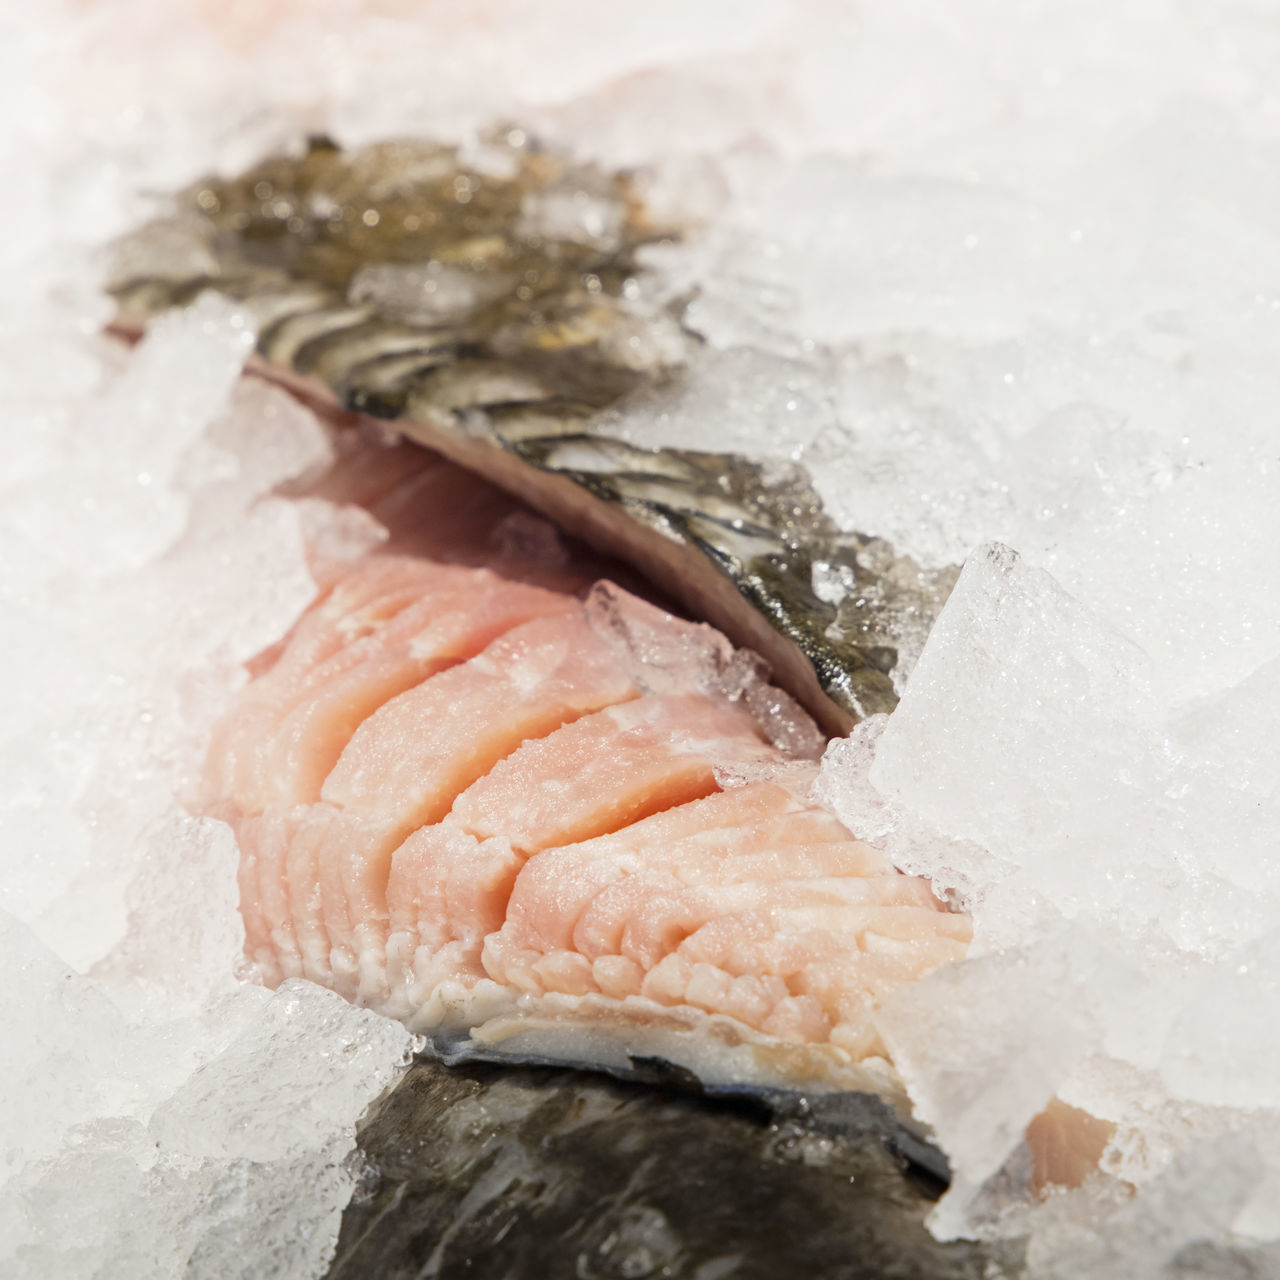 Catch of the day, fresh cod fish fillet on ice in retail store display. close up Catch Of The Day Chopped Close-up COD Codfish Cooking Fillet Fish Fish On Ice Fisherman Food Fresh Ice Ingredient Market Retail  Retail Display Sale Seafood Selection Shelf Sliced Store Supermarket The Shop Around The Corner